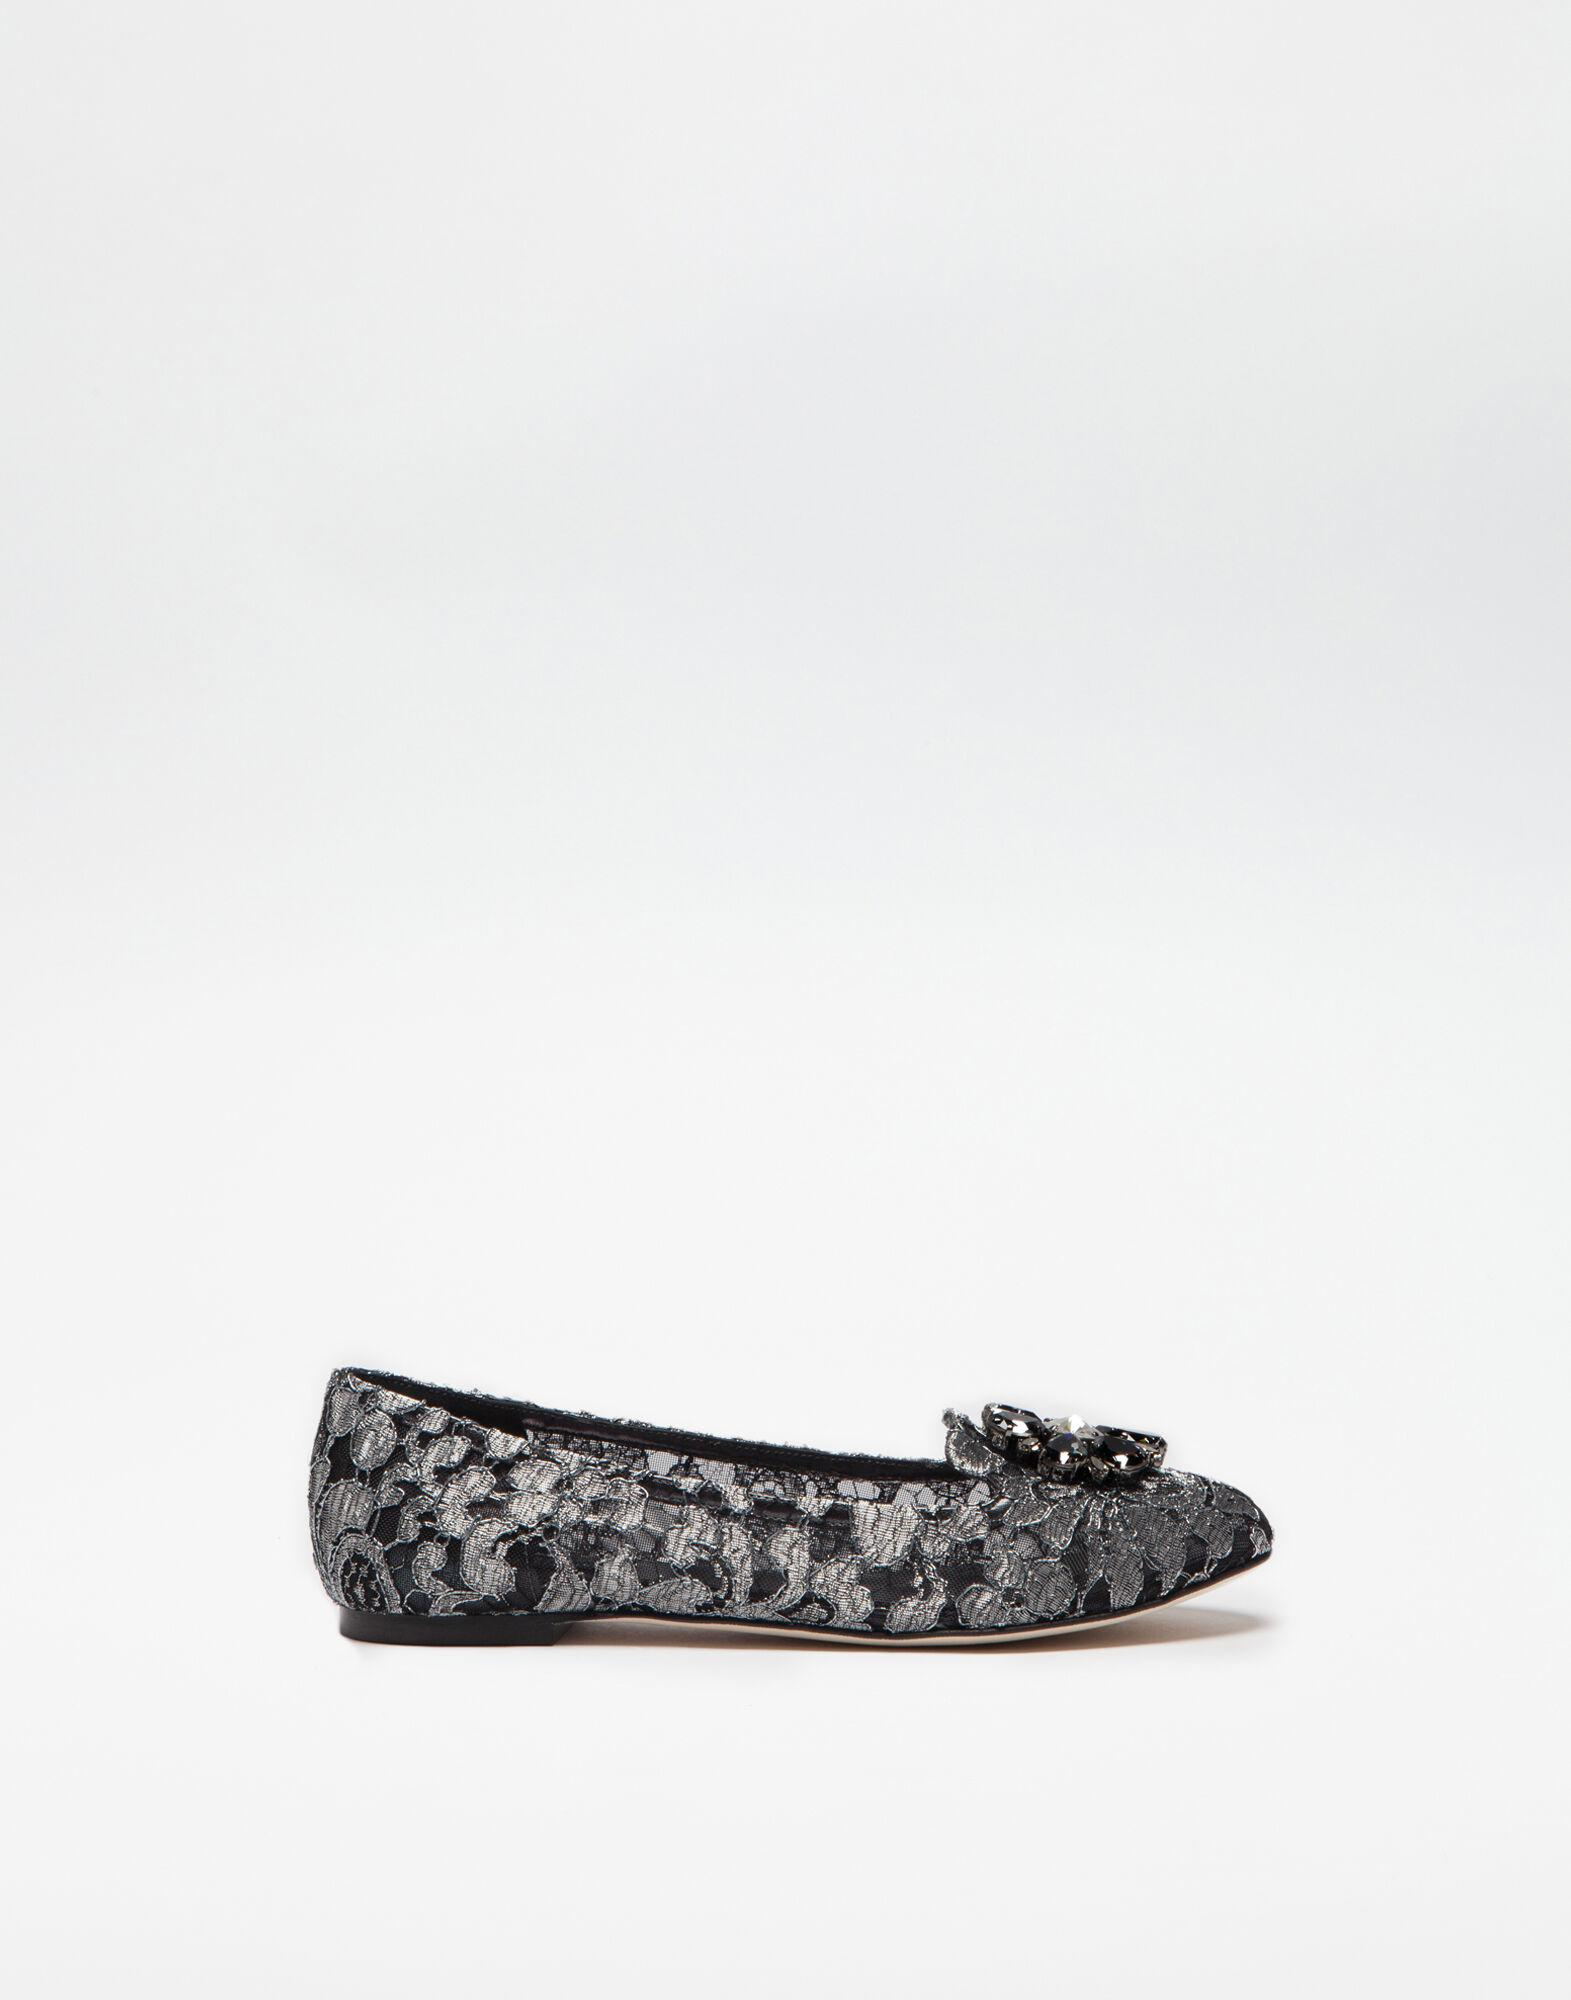 Slipper in Taormina lurex lace with crystals